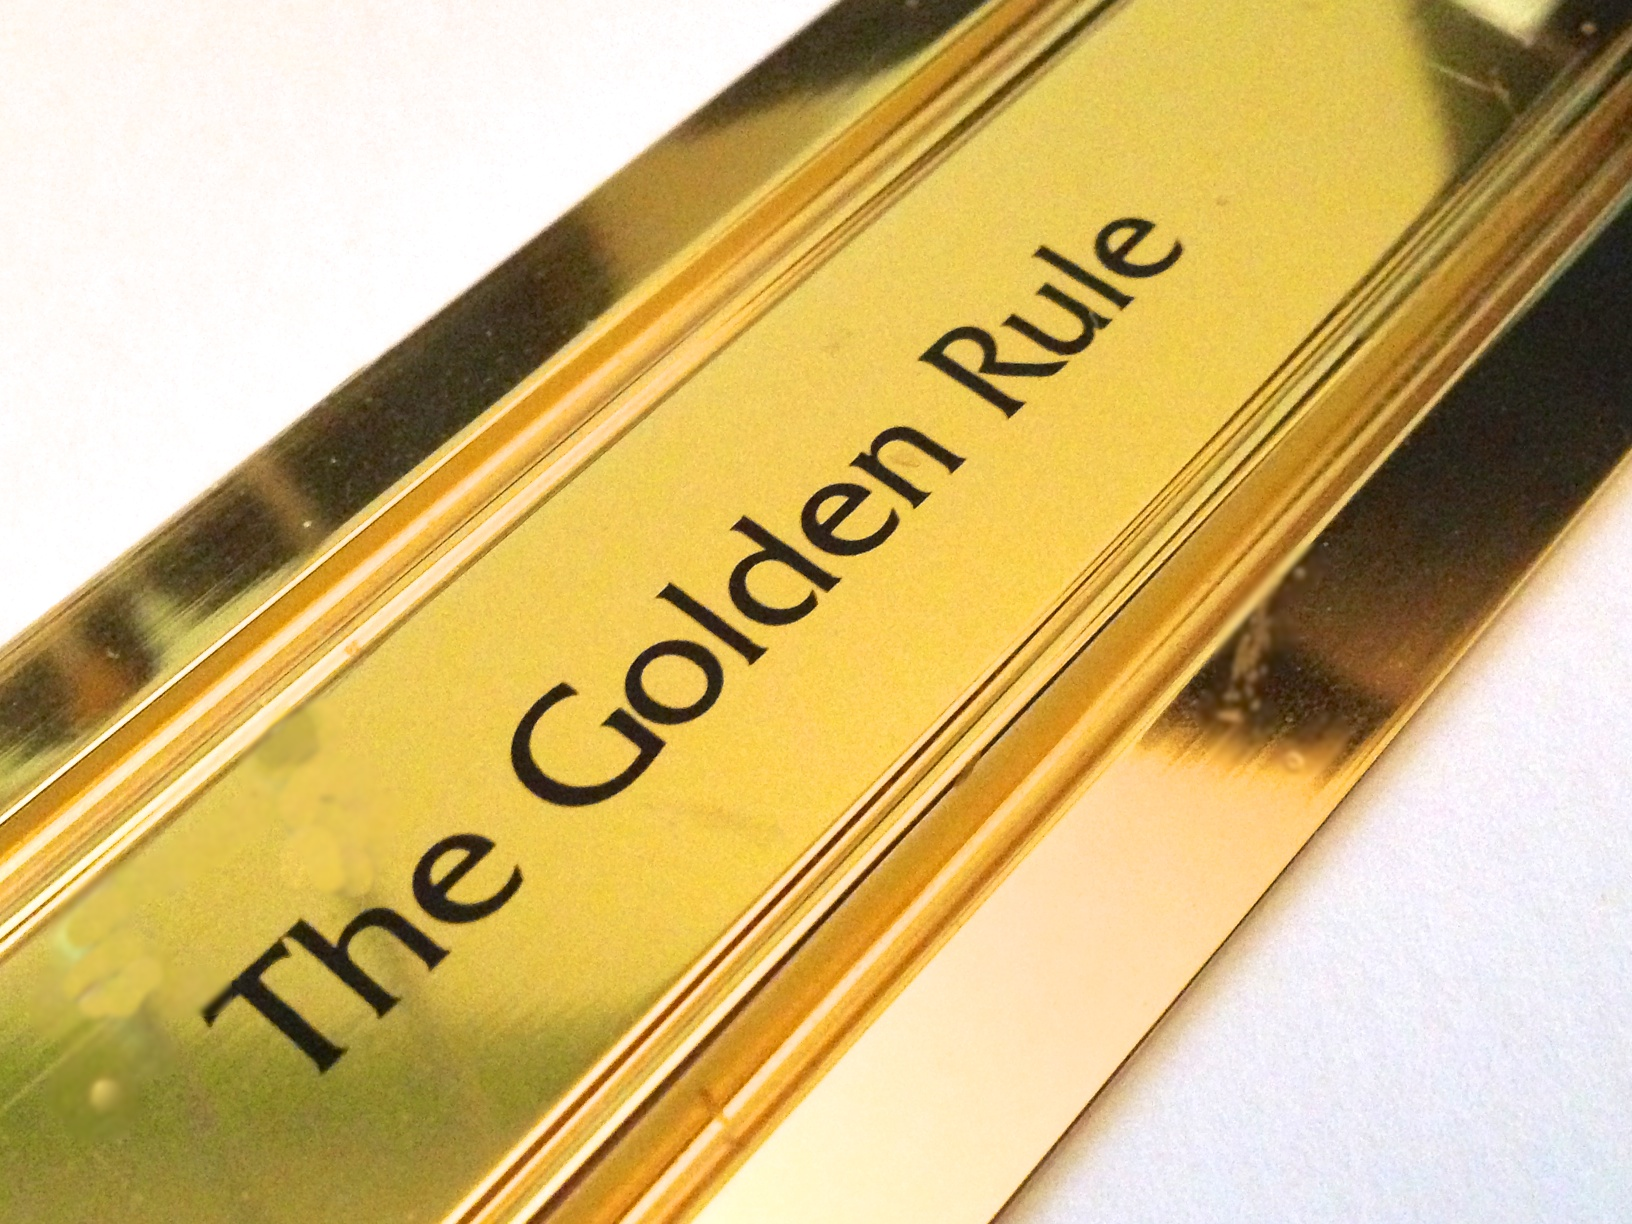 management and golden rule Get reviews, hours, directions, coupons and more for golden rule property  management at 1505 n lorraine st, hutchinson, ks search for other real estate .